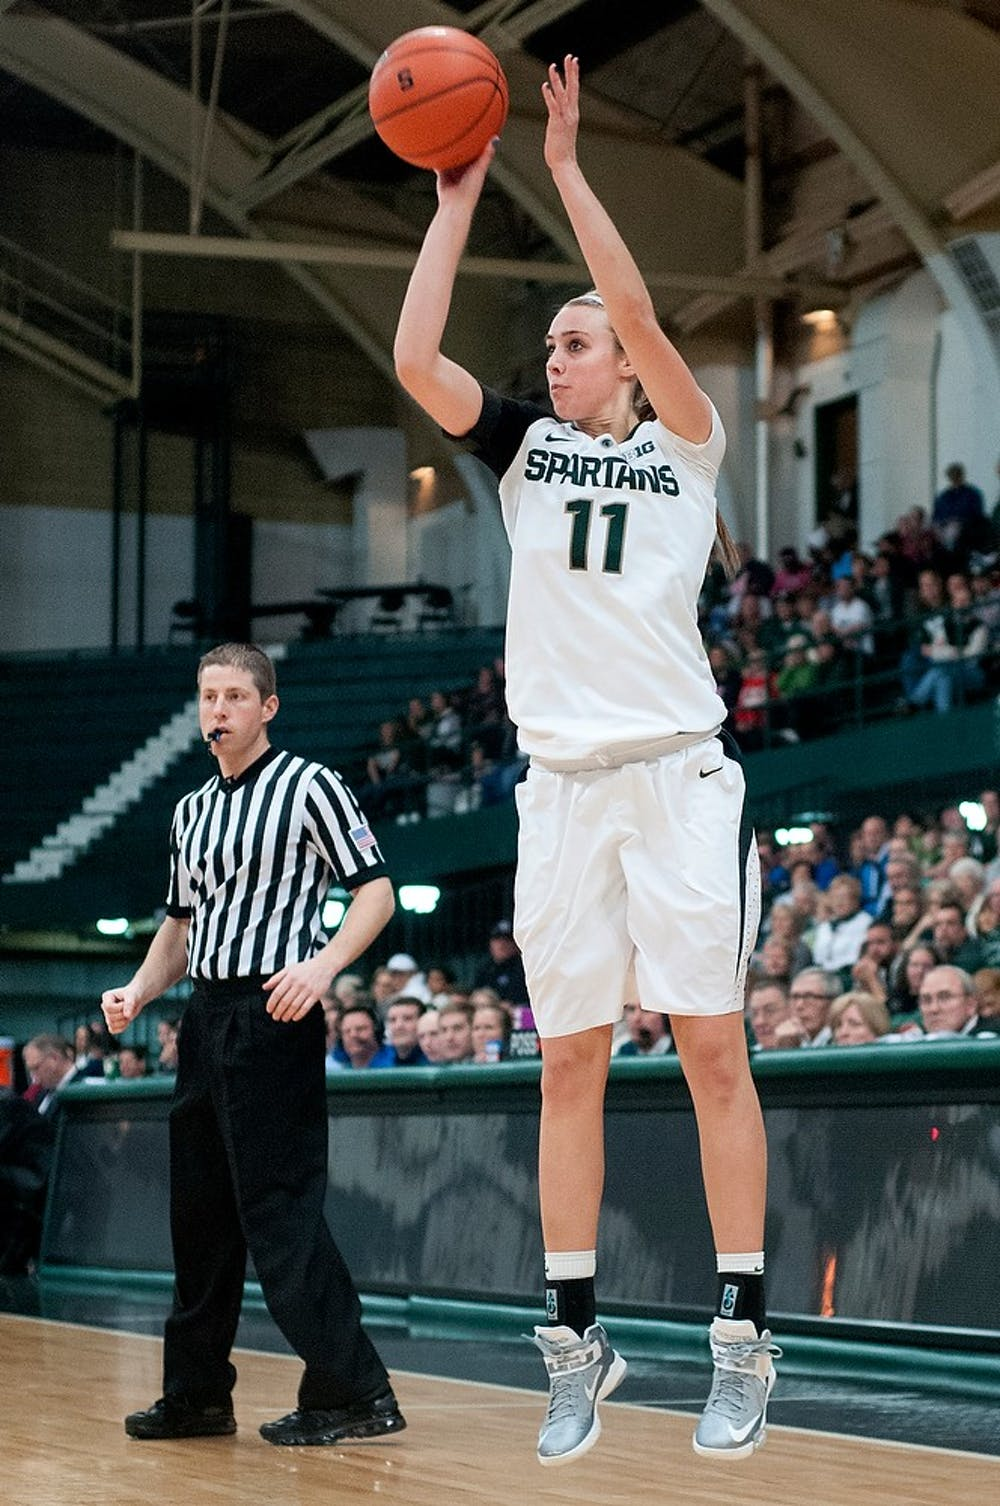 """<p>Junior forward Annalise Pickrel attempts a 3-point field goal. She contributed 15 points for <span class=""""caps"""">MSU</span> as the Spartans defeated <span class=""""caps"""">IPFW</span>, 64-36, Sunday, Dec. 16, 2012, at Jenison Field House. Justin Wan/The State News</p>"""